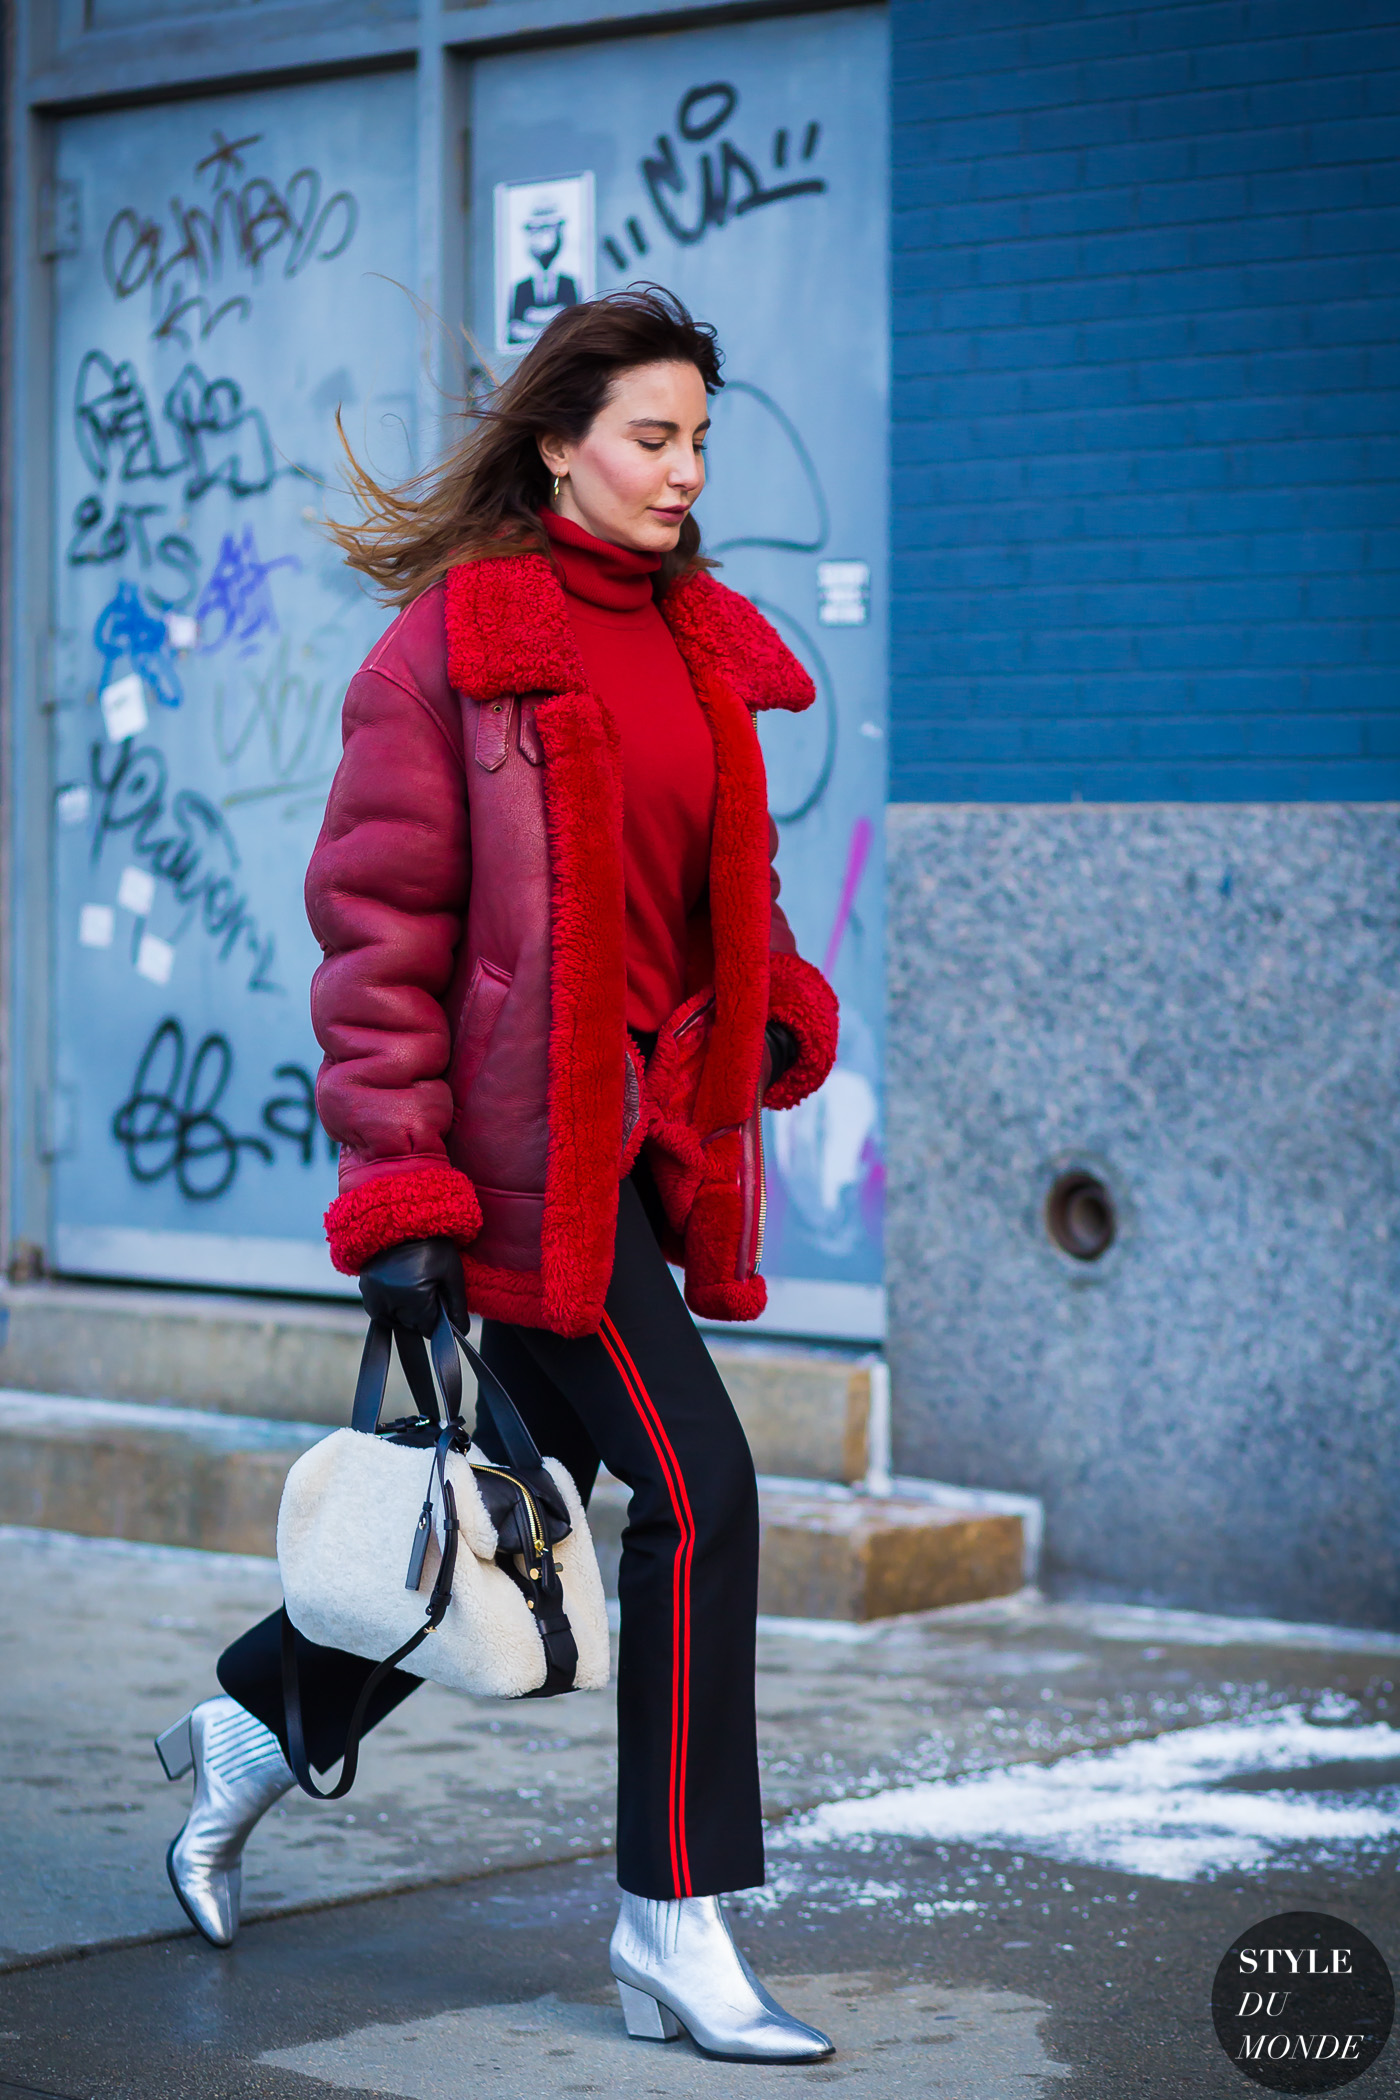 ece-sukan-by-styledumonde-street-style-fashion-photography